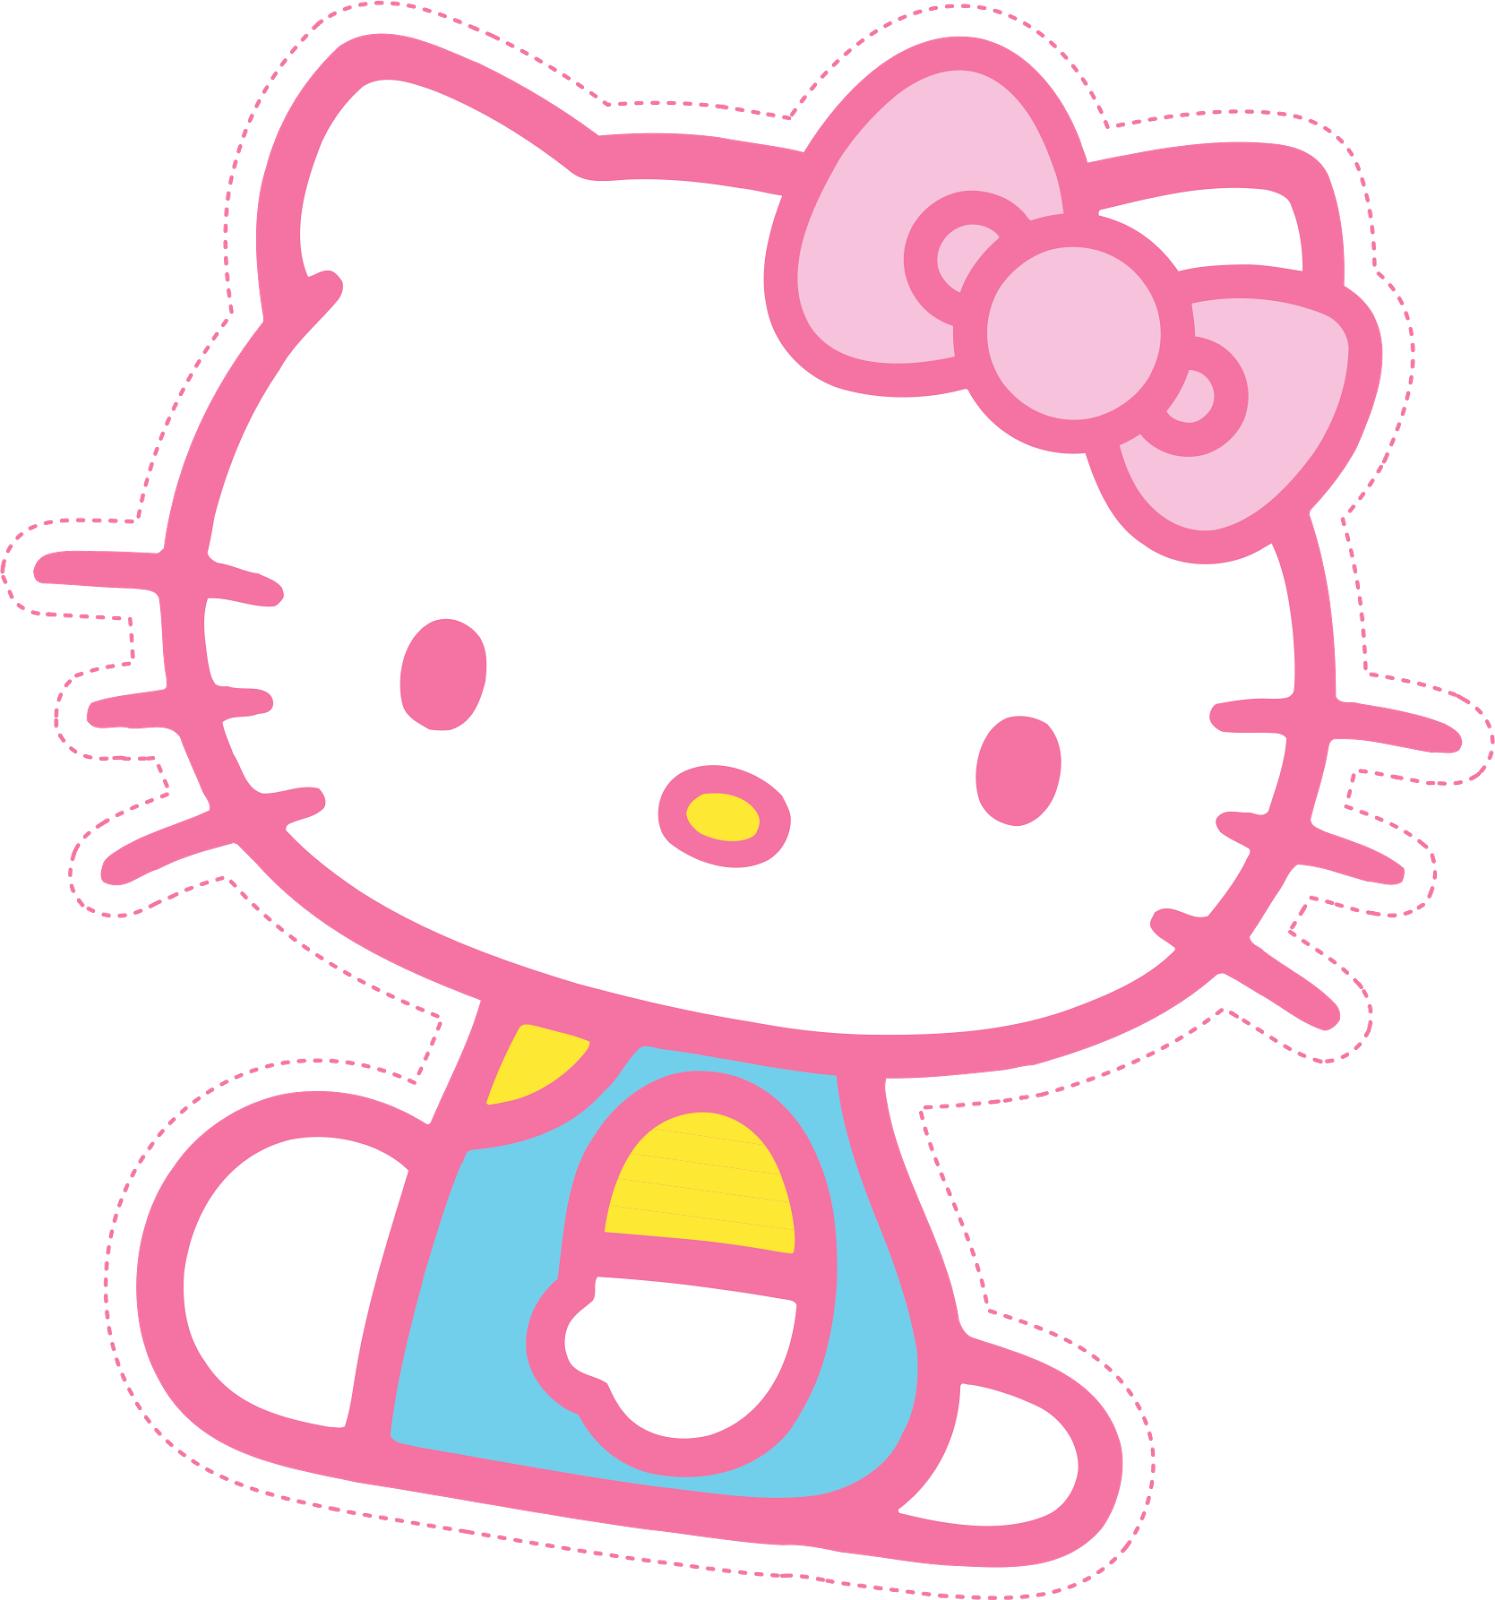 Hello Kitty Free Printable Mini Kit. | Oh My Fiesta! in ...